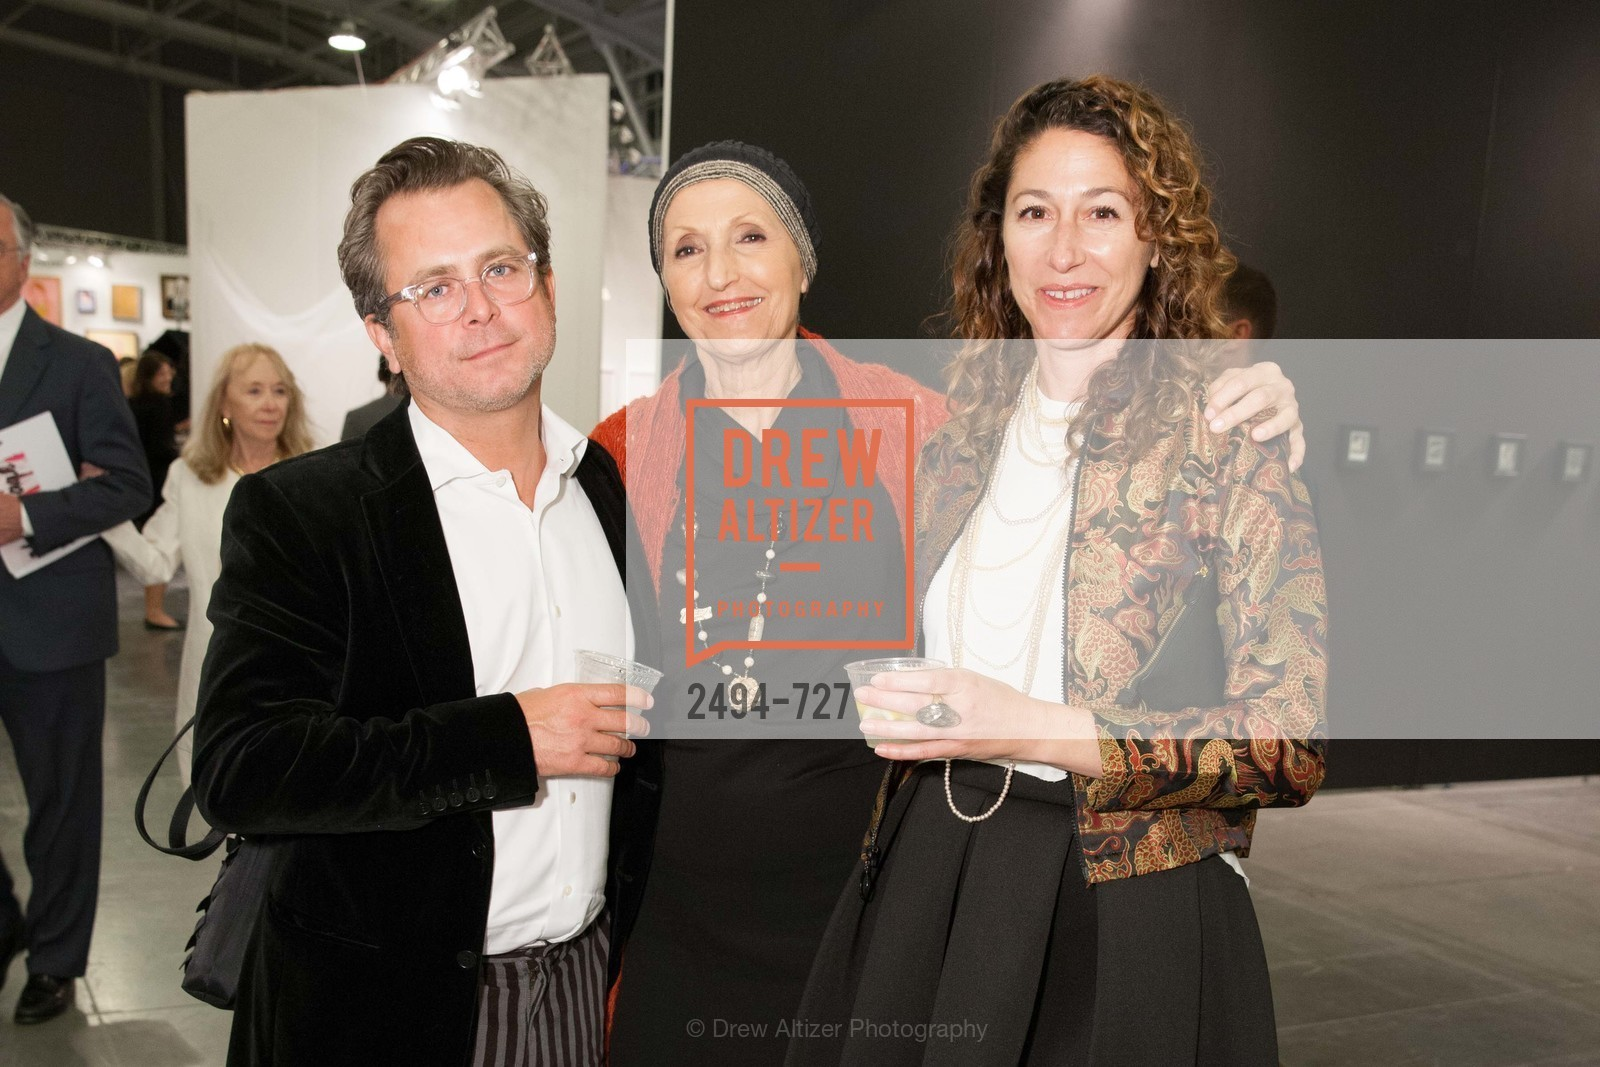 Chris Franklin, Lydia Cisco, Rose Titcomb, SAN FRANCISCO ART INSTITUTE Gala Honoring Art Visionary and Advocate ROSELYNE CHROMAN SWIG, US, May 13th, 2015,Drew Altizer, Drew Altizer Photography, full-service agency, private events, San Francisco photographer, photographer california